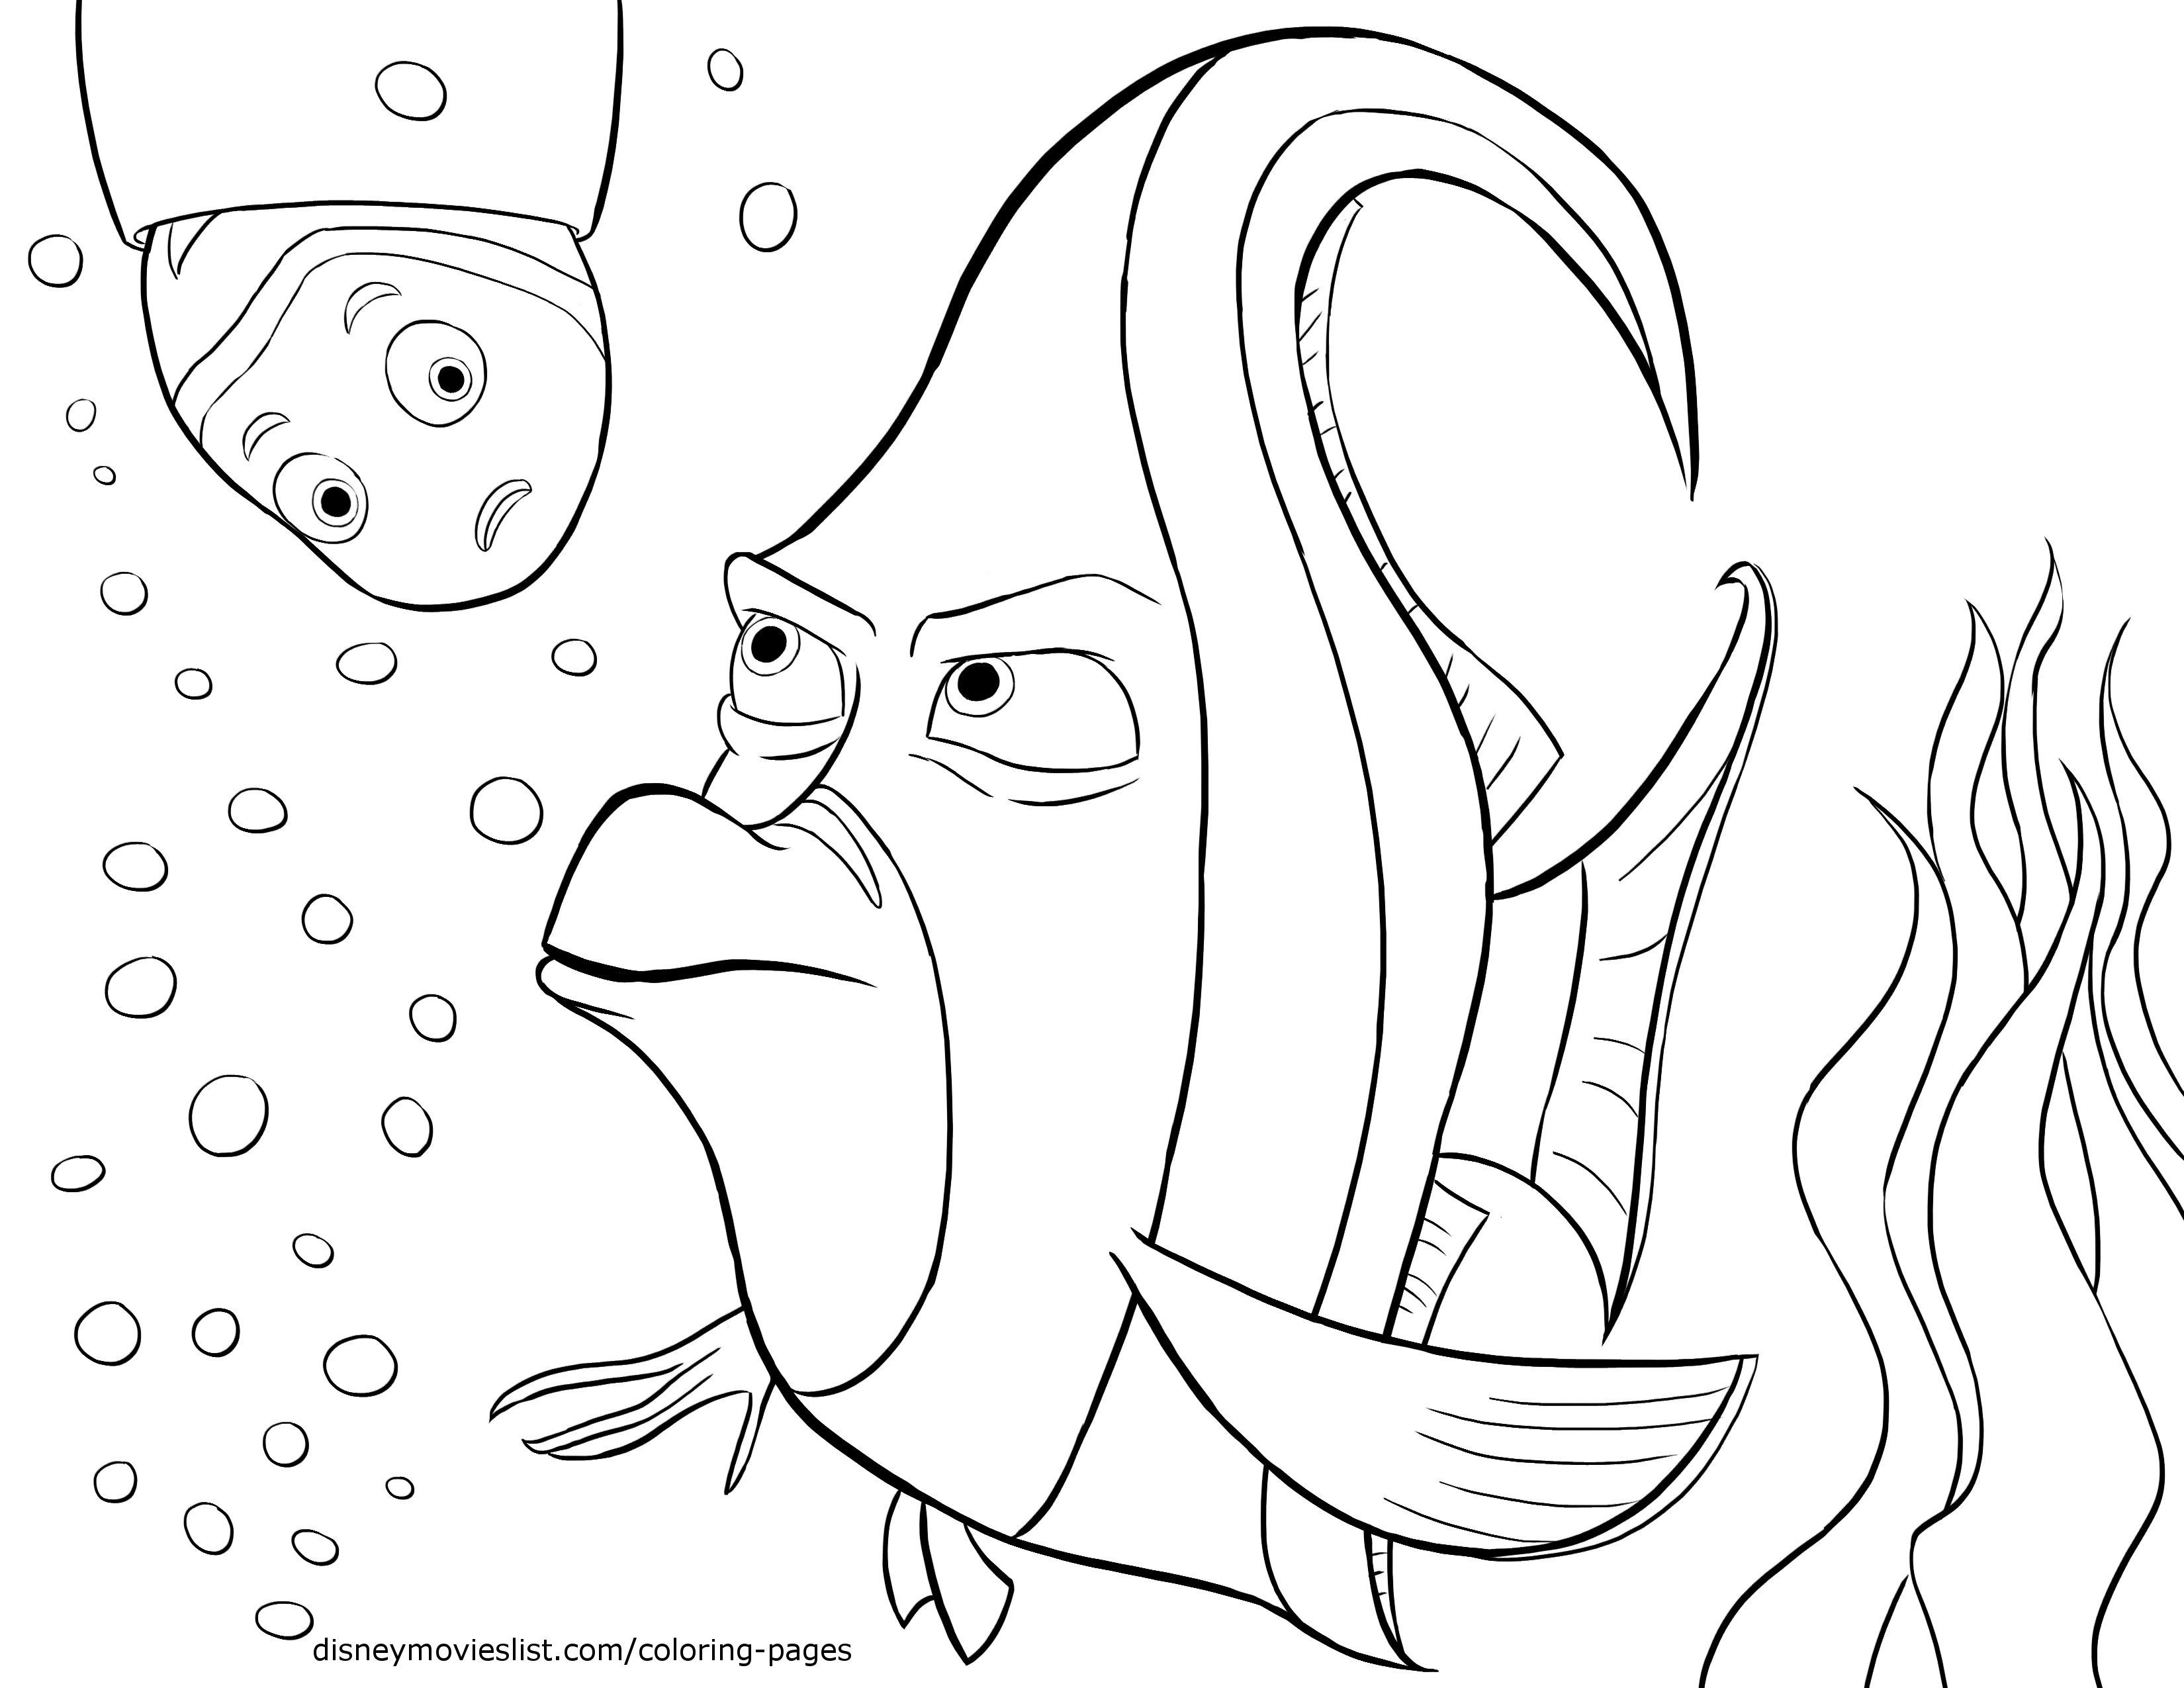 Shake It Up Coloring Pages. Download Finding Nemo Coloring Pages  birthday ideas for kids